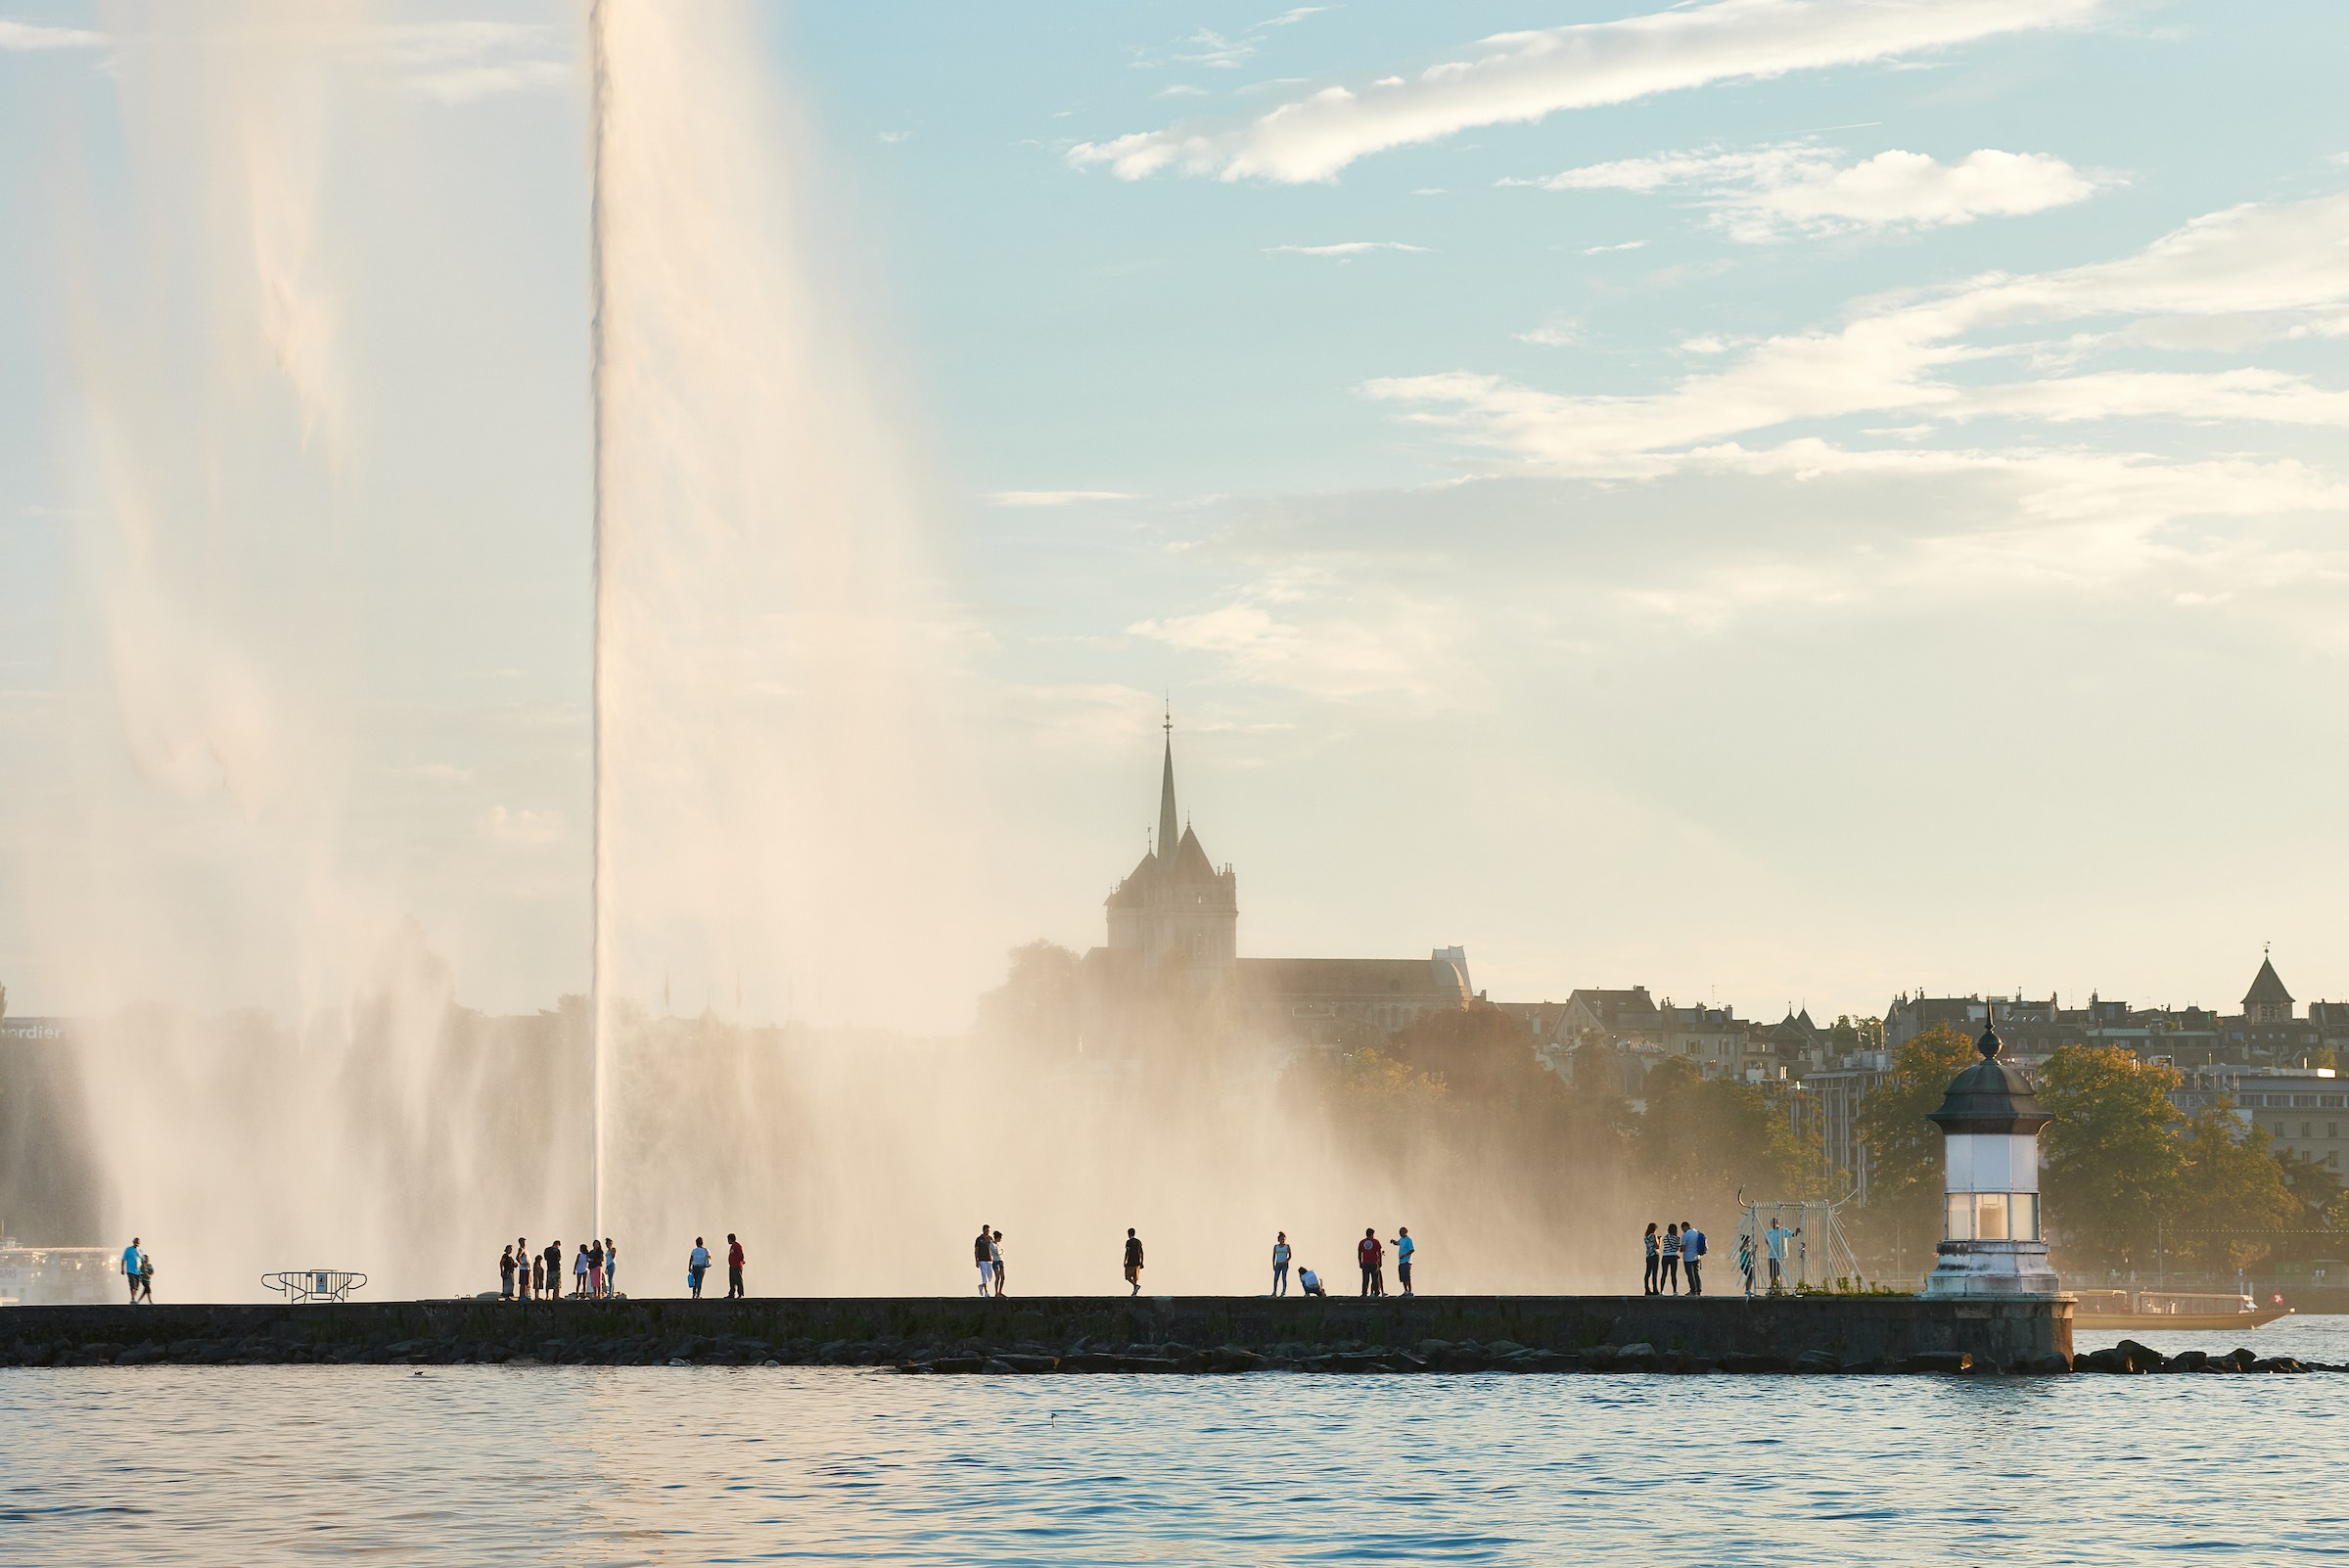 #Ecsite2018 will take place in Geneva, Switzerland